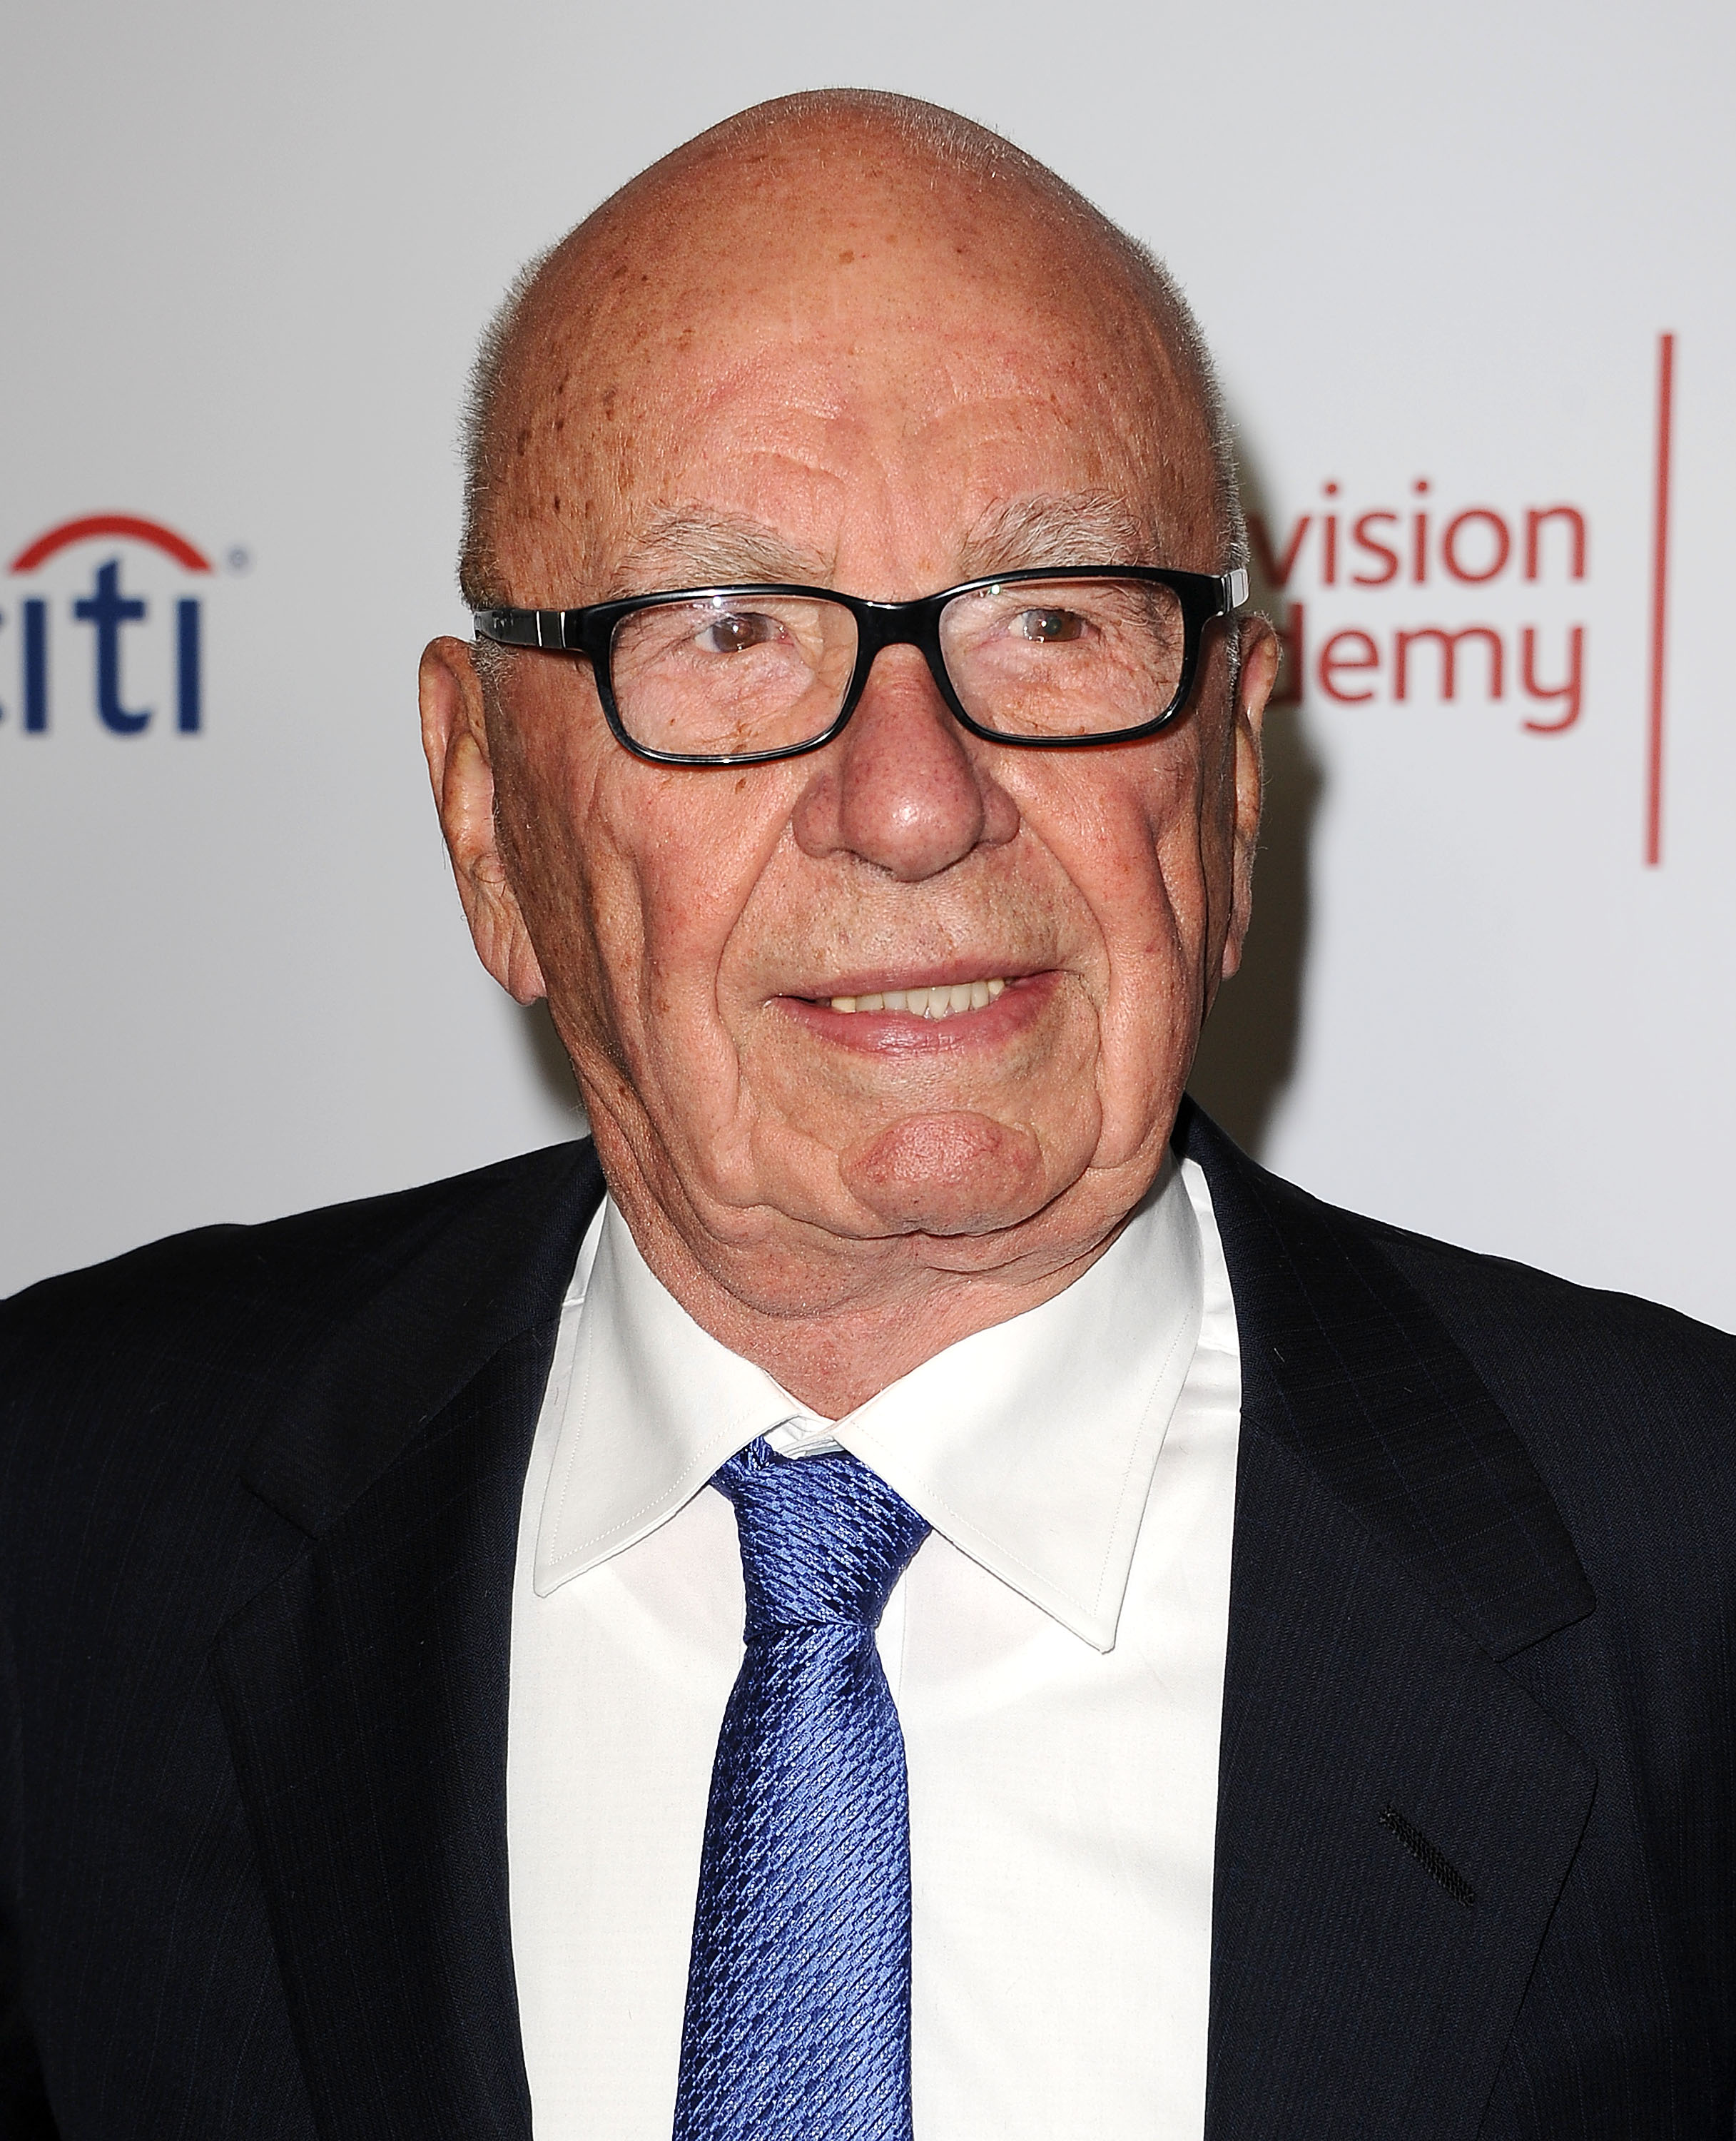 Rupert Murdoch attends the Television Academy's 23rd Hall of Fame induction gala at Regent Beverly Wilshire Hotel on March 11, 2014 in Beverly Hills, Calif.